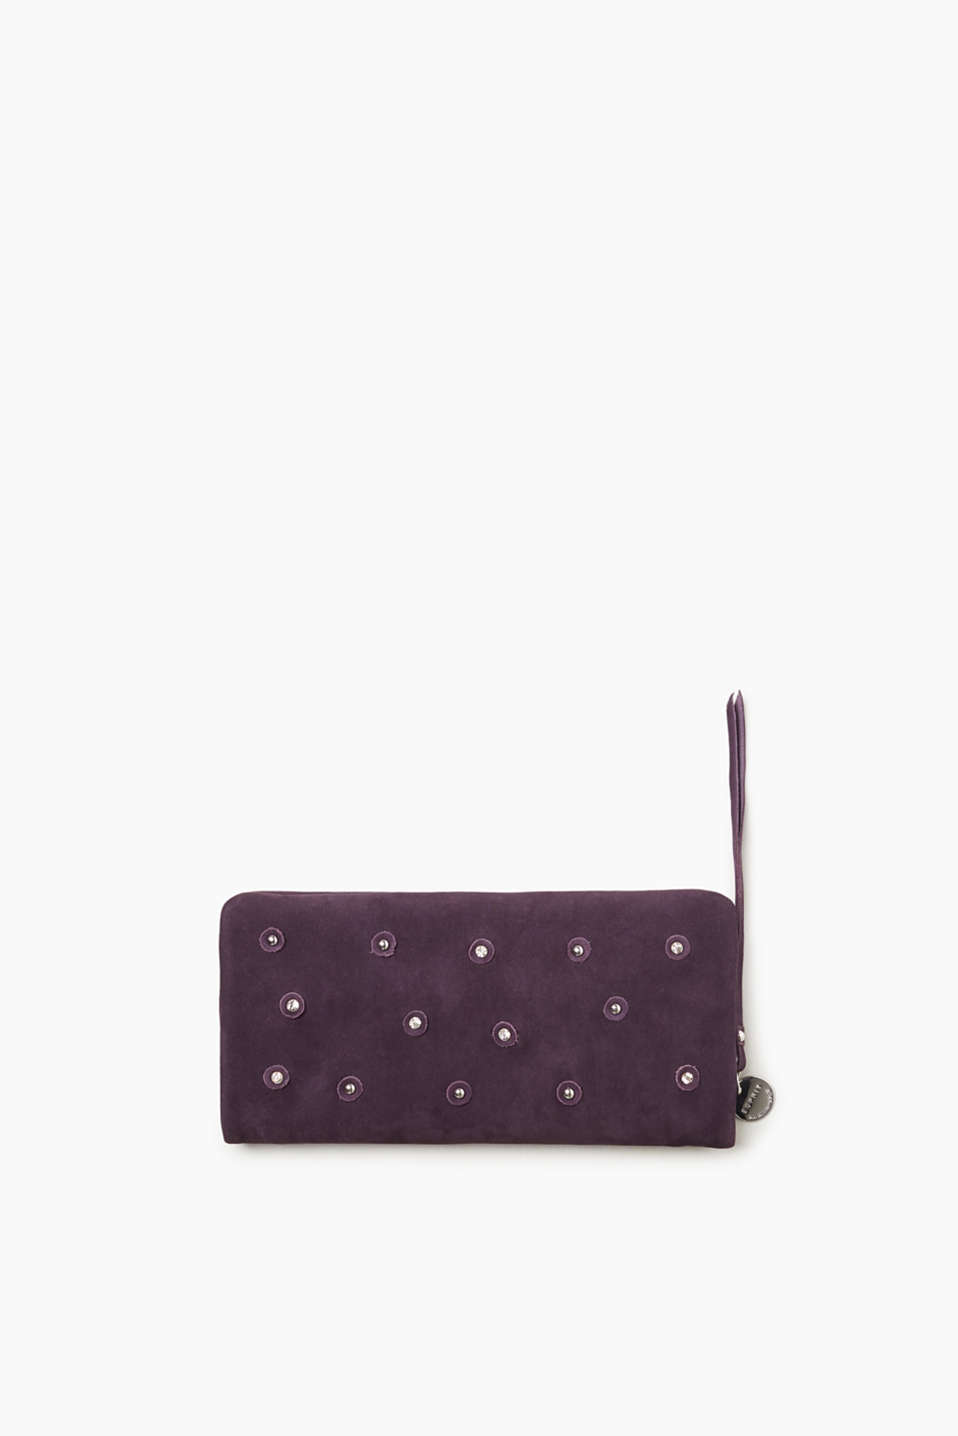 Esprit - Clutch/purse in 100% leather